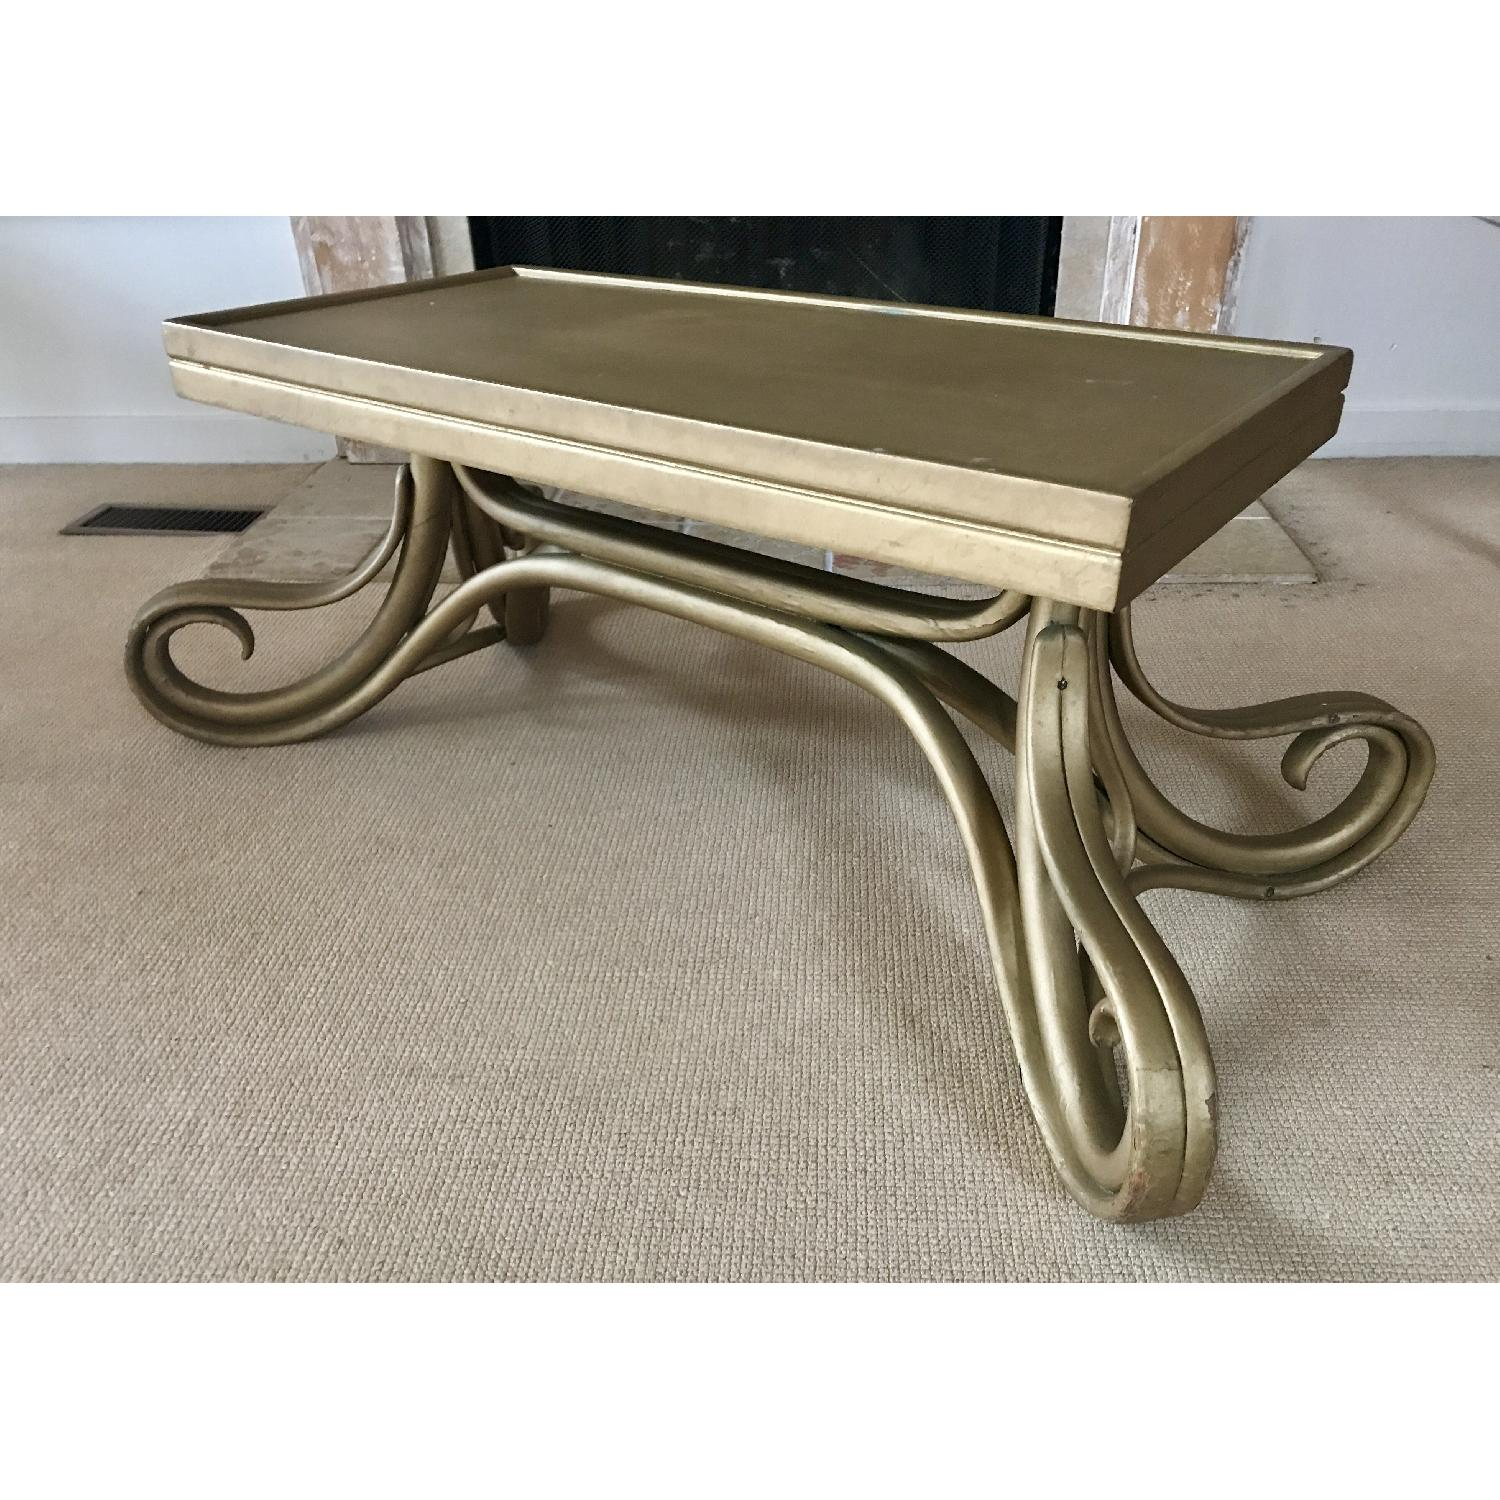 Vintage Thonet Bentwood Glass Top Coffee Table - image-6